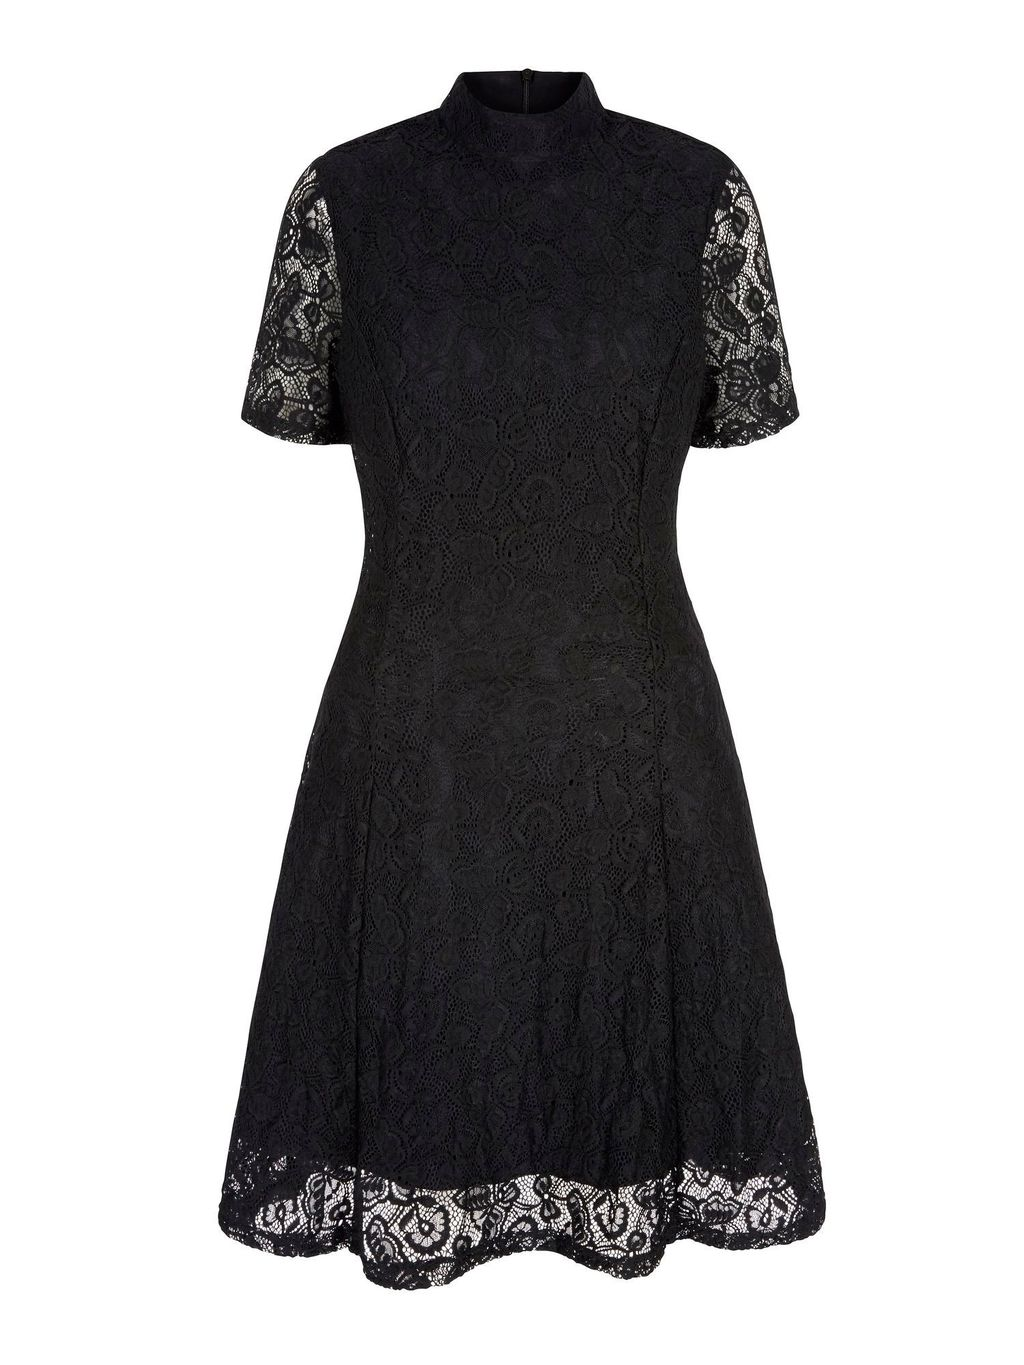 Floral Print Lace High Neck Dress, Black - pattern: plain; neckline: high neck; predominant colour: black; occasions: evening; length: on the knee; fit: fitted at waist & bust; style: fit & flare; fibres: polyester/polyamide - stretch; sleeve length: short sleeve; sleeve style: standard; texture group: lace; pattern type: fabric; season: a/w 2015